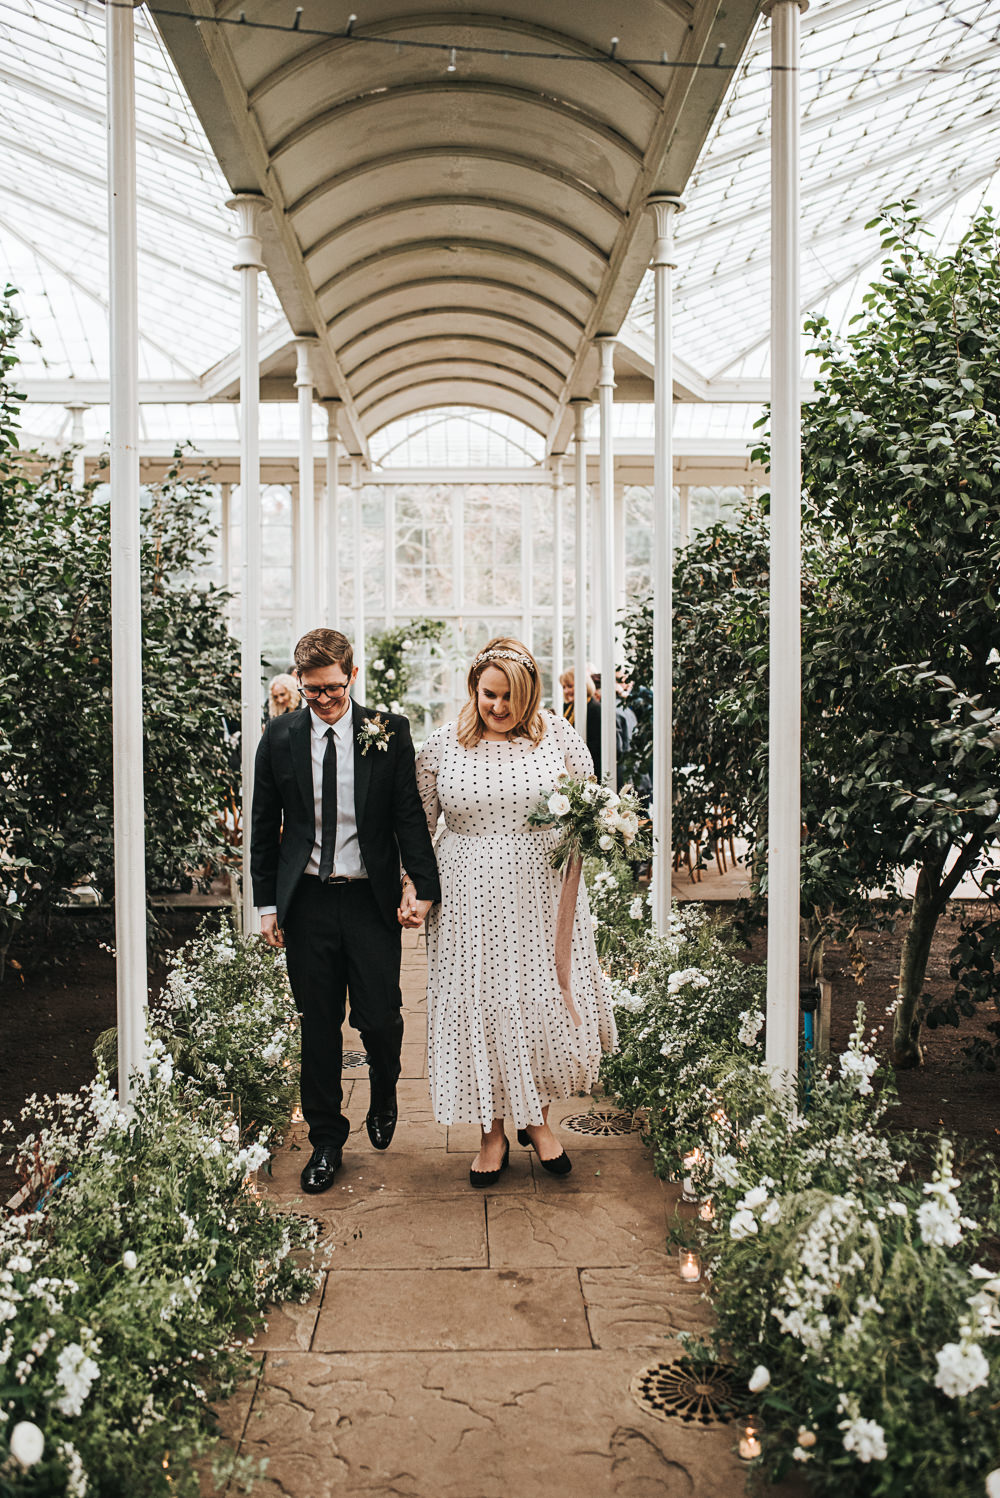 Aisle Flowers Greenery Foliage Meadow Candles Ceremony Wollaton Hall Wedding Pear and Bear Photography